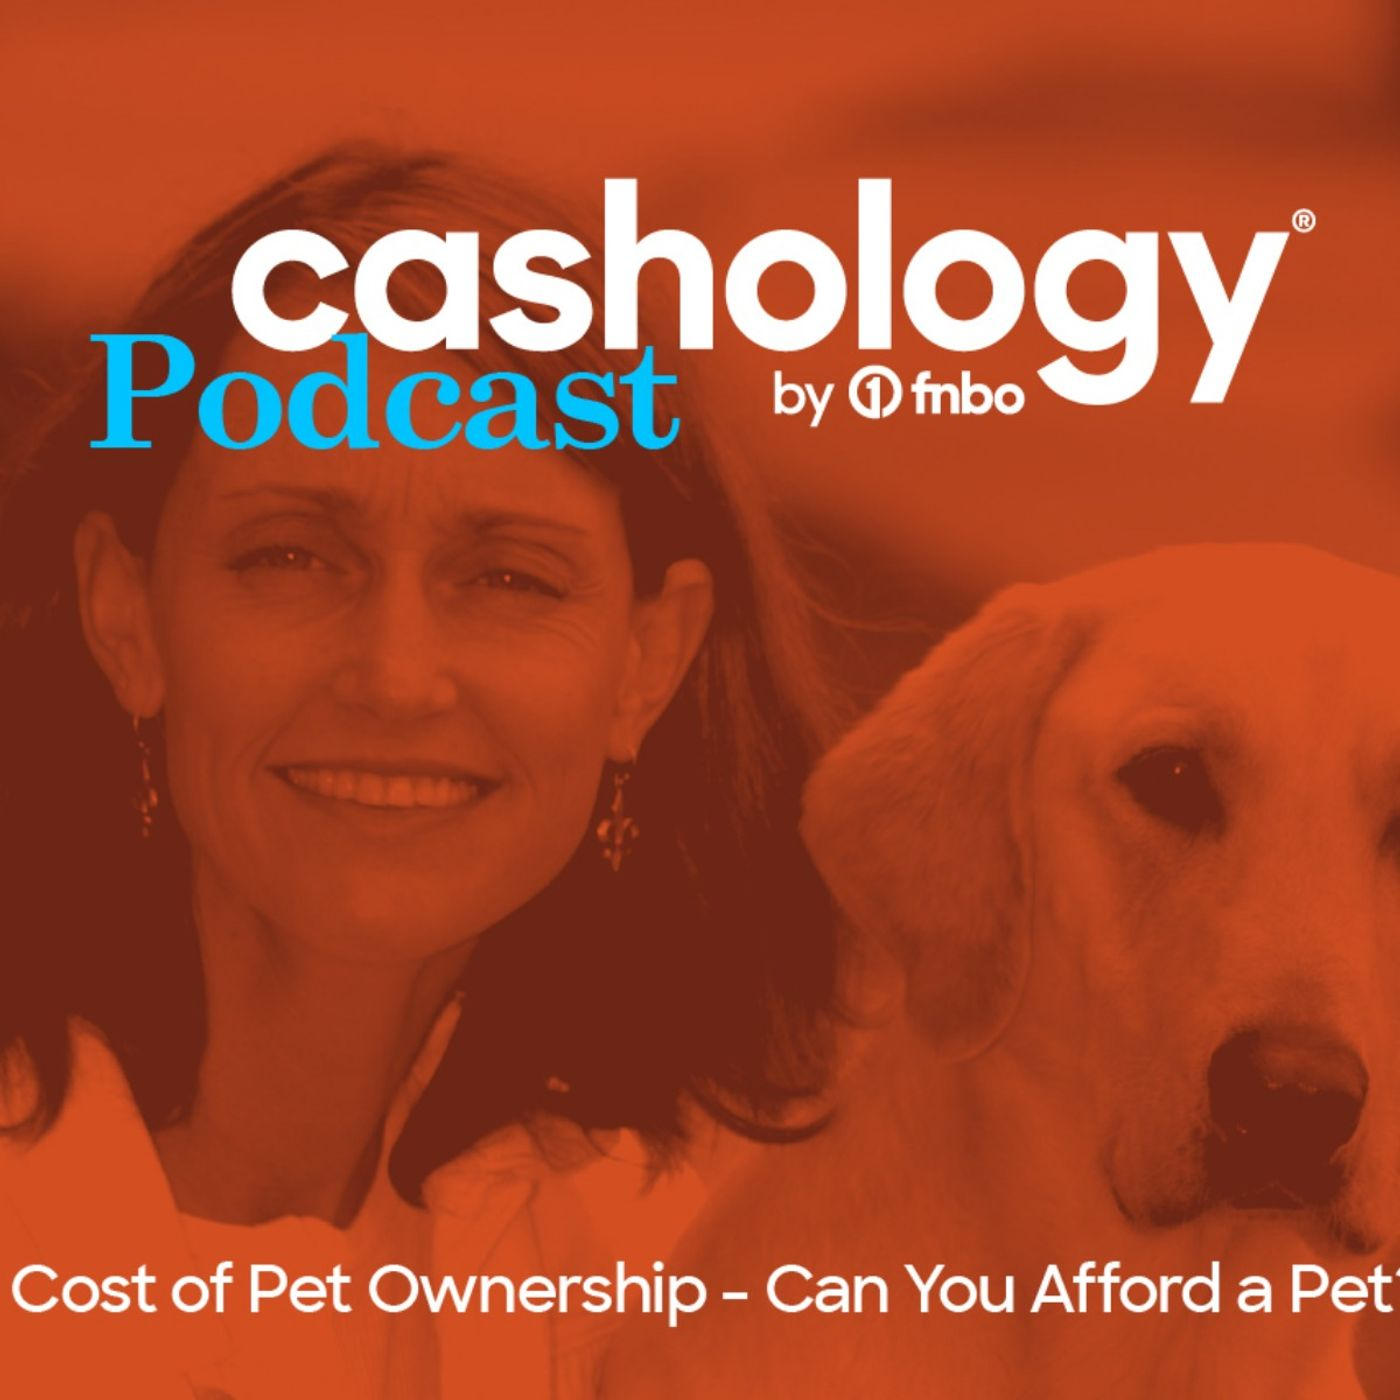 Cost of Pet Ownership - Can You Afford a Pet?